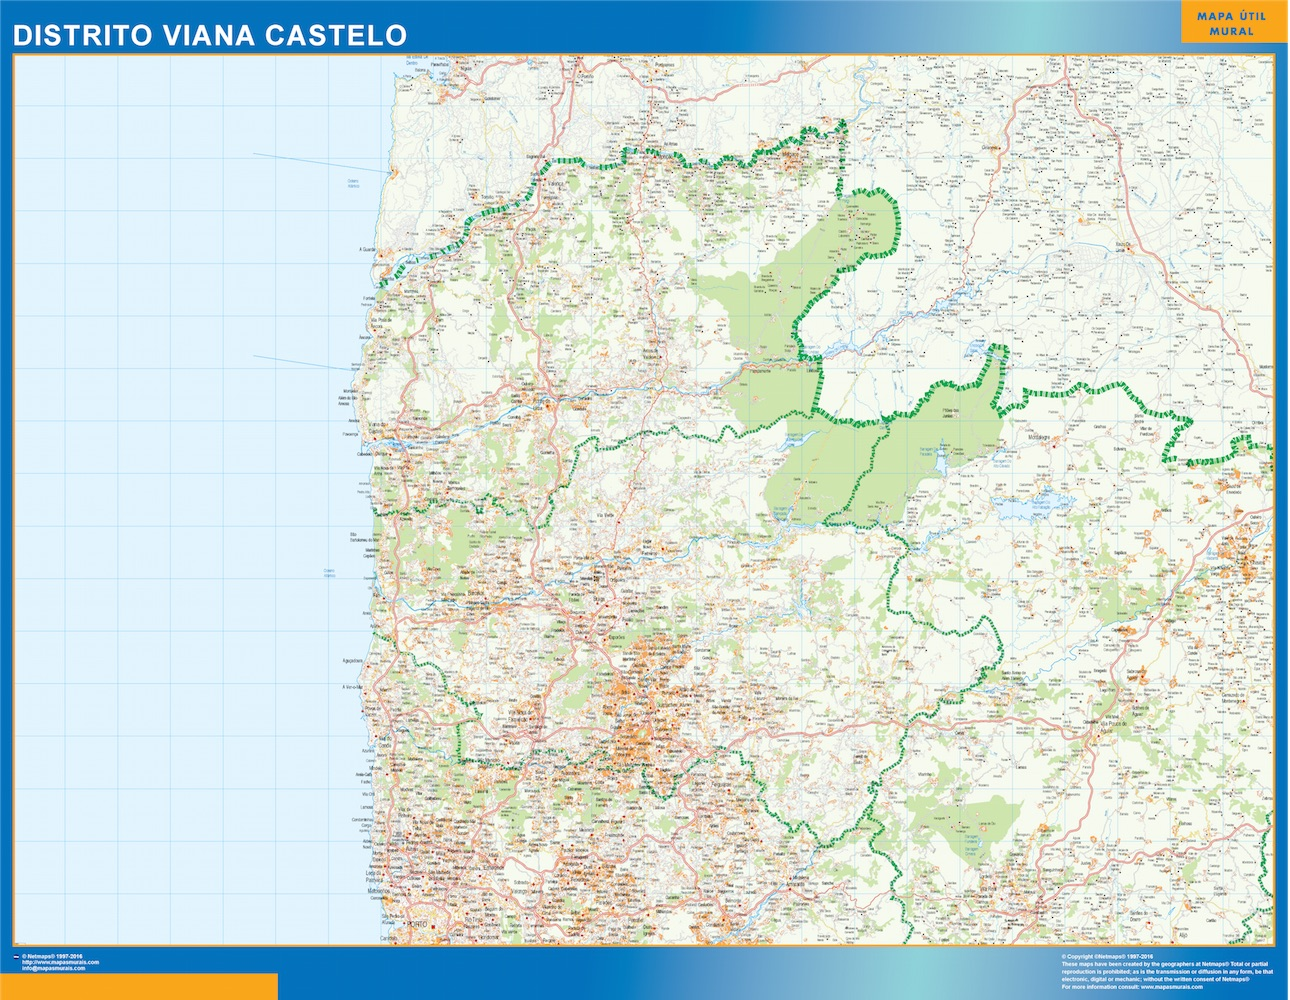 Region Of Viana Castelo Map In Portugal Wall Maps Of The World